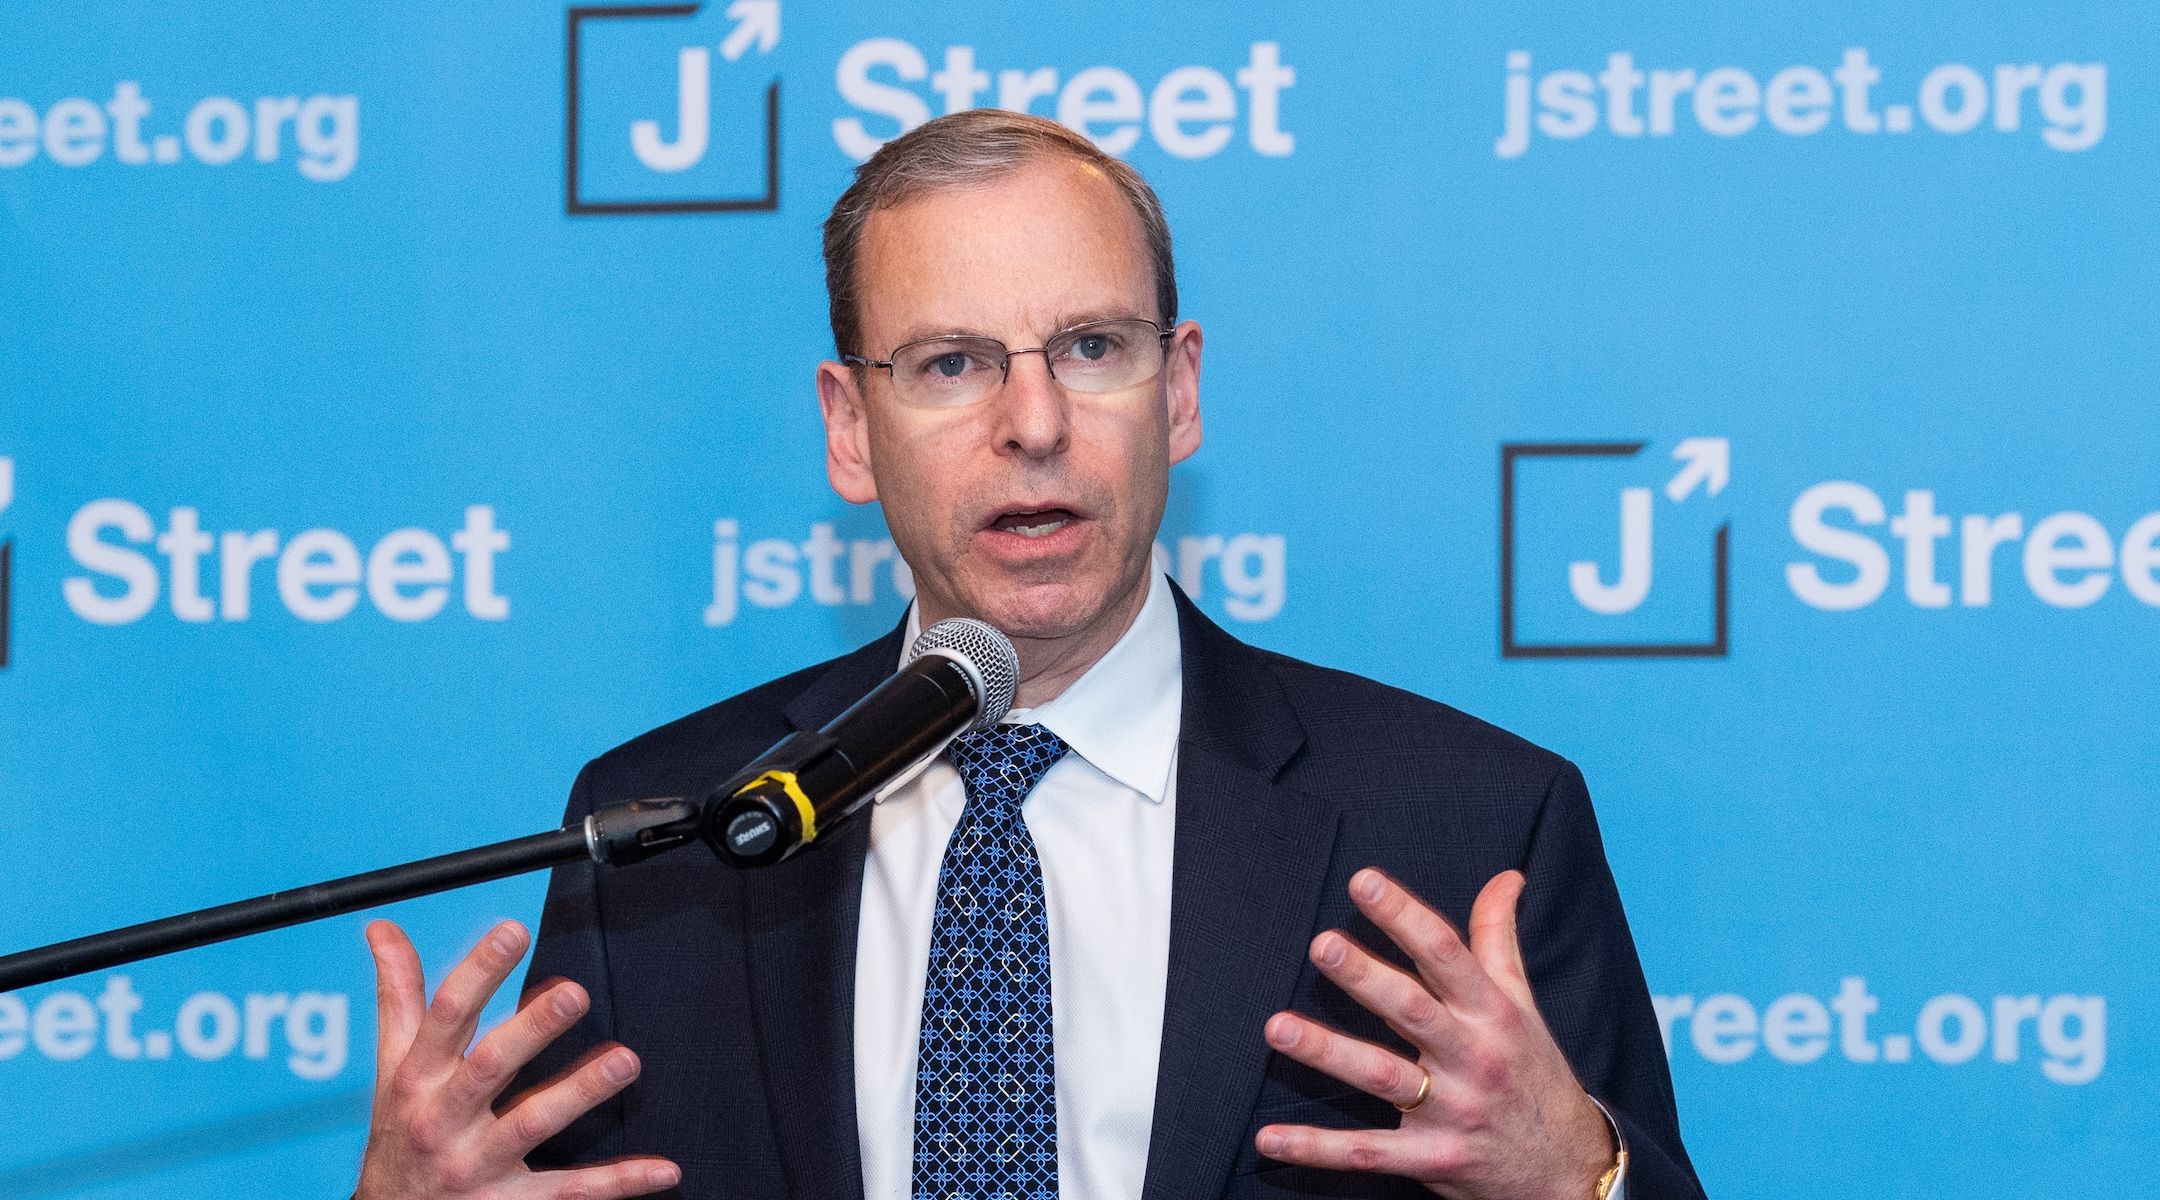 Jeremy Ben-Ami, president of J Street, speaking at the J Street National Conference in 2018. (Michael Brochstein/SOPA Images/LightRocket via Getty Images)